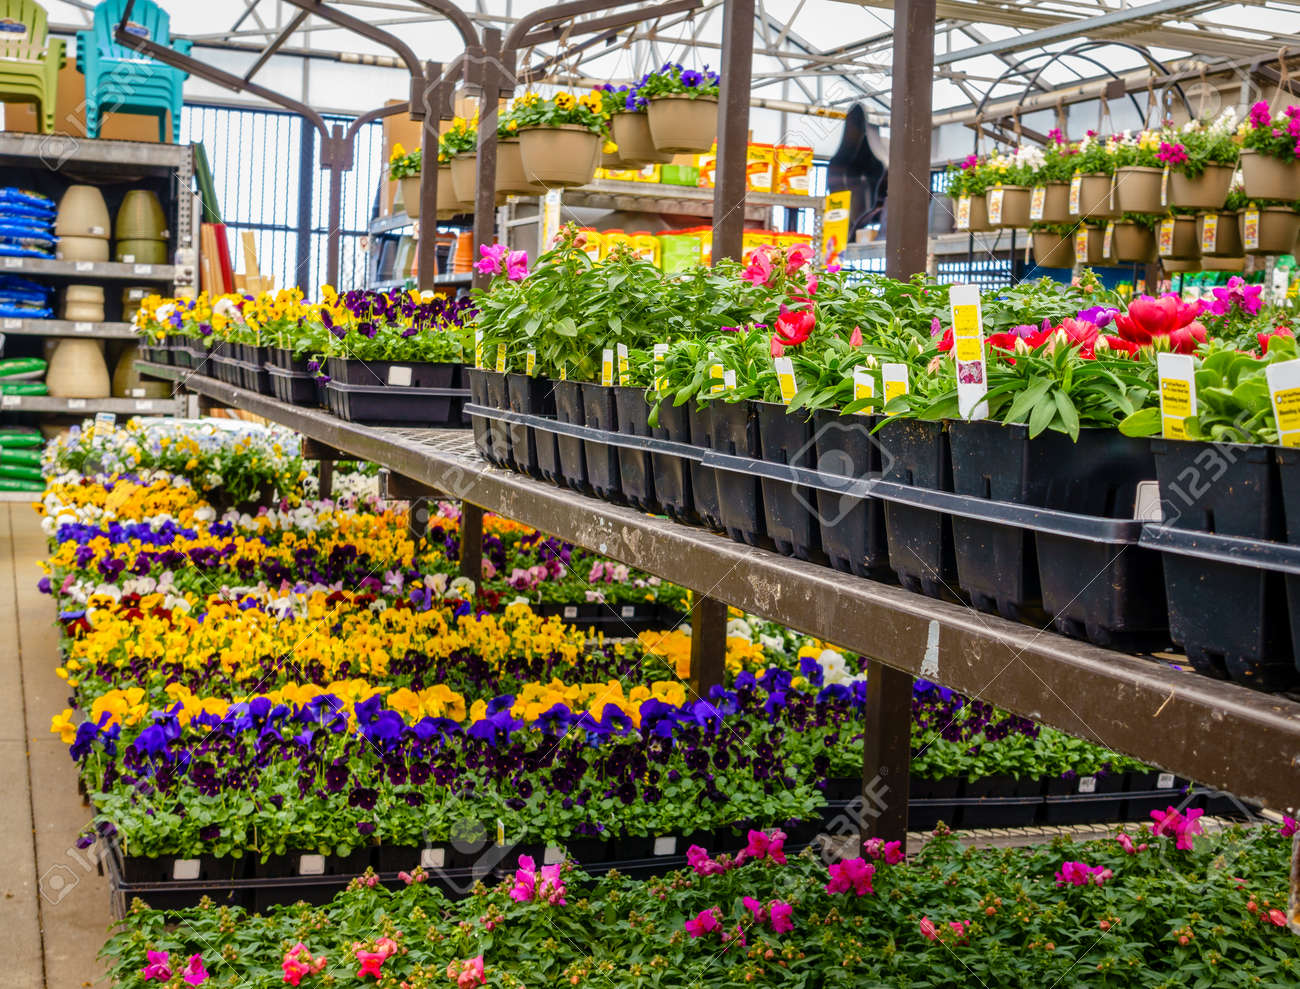 Potted flowers and plants on display at a home improvement store potted flowers and plants on display at a home improvement store in spring stock photo mightylinksfo Image collections